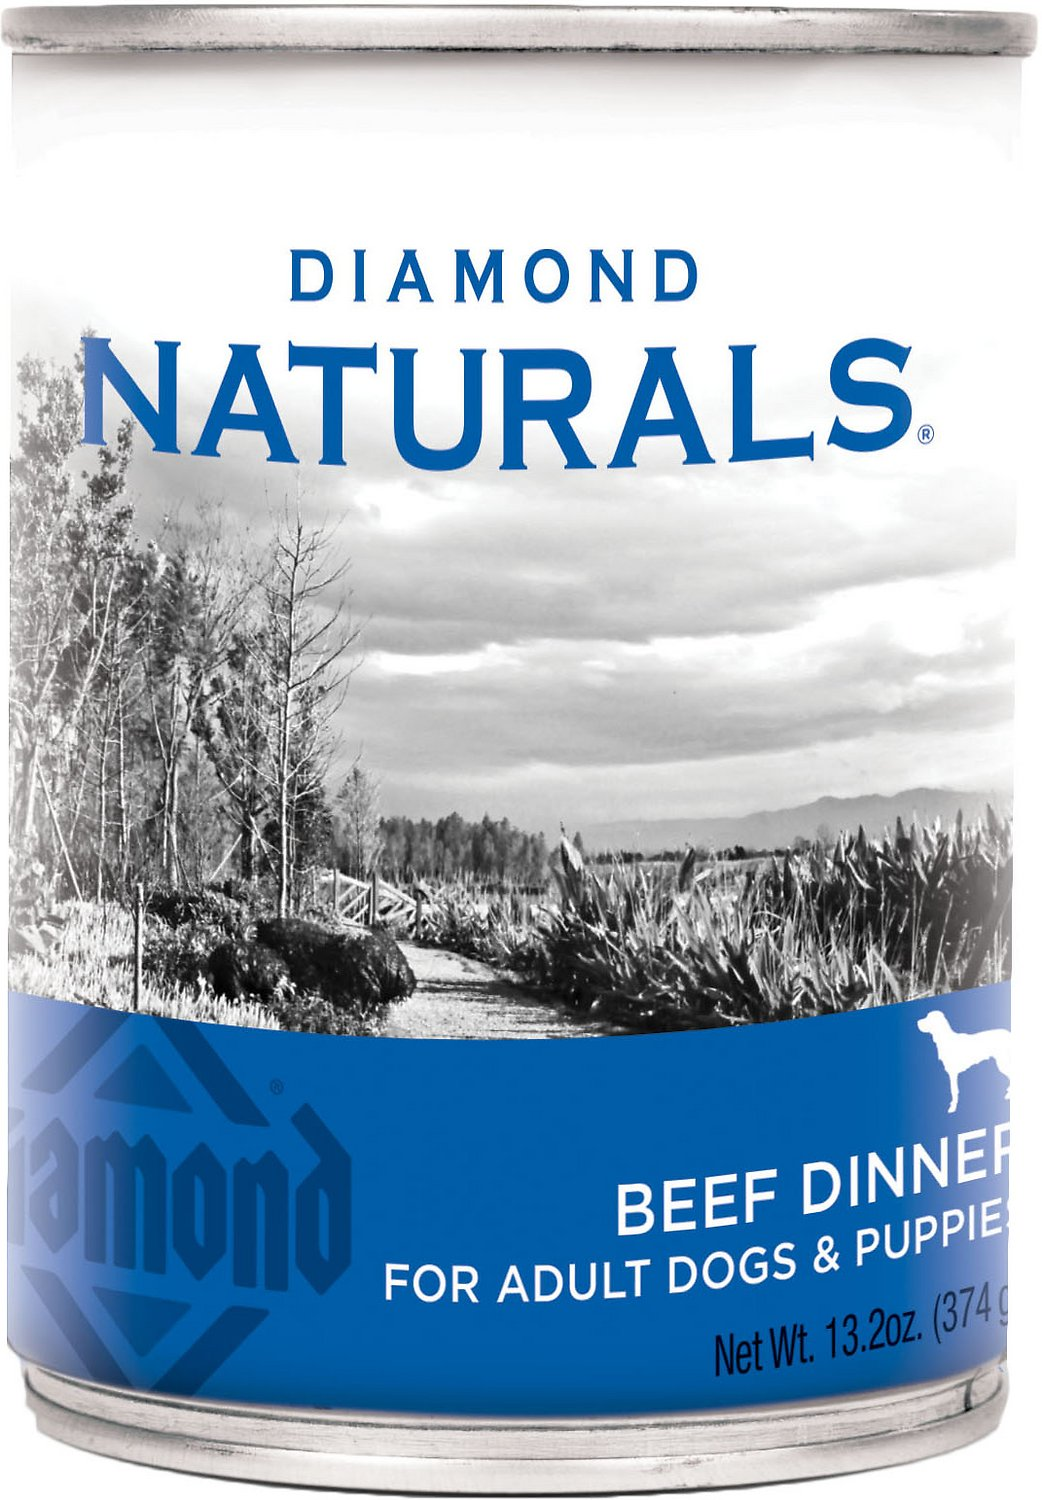 Diamond Naturals Beef Dinner Adult & Puppy Canned Dog Food Image